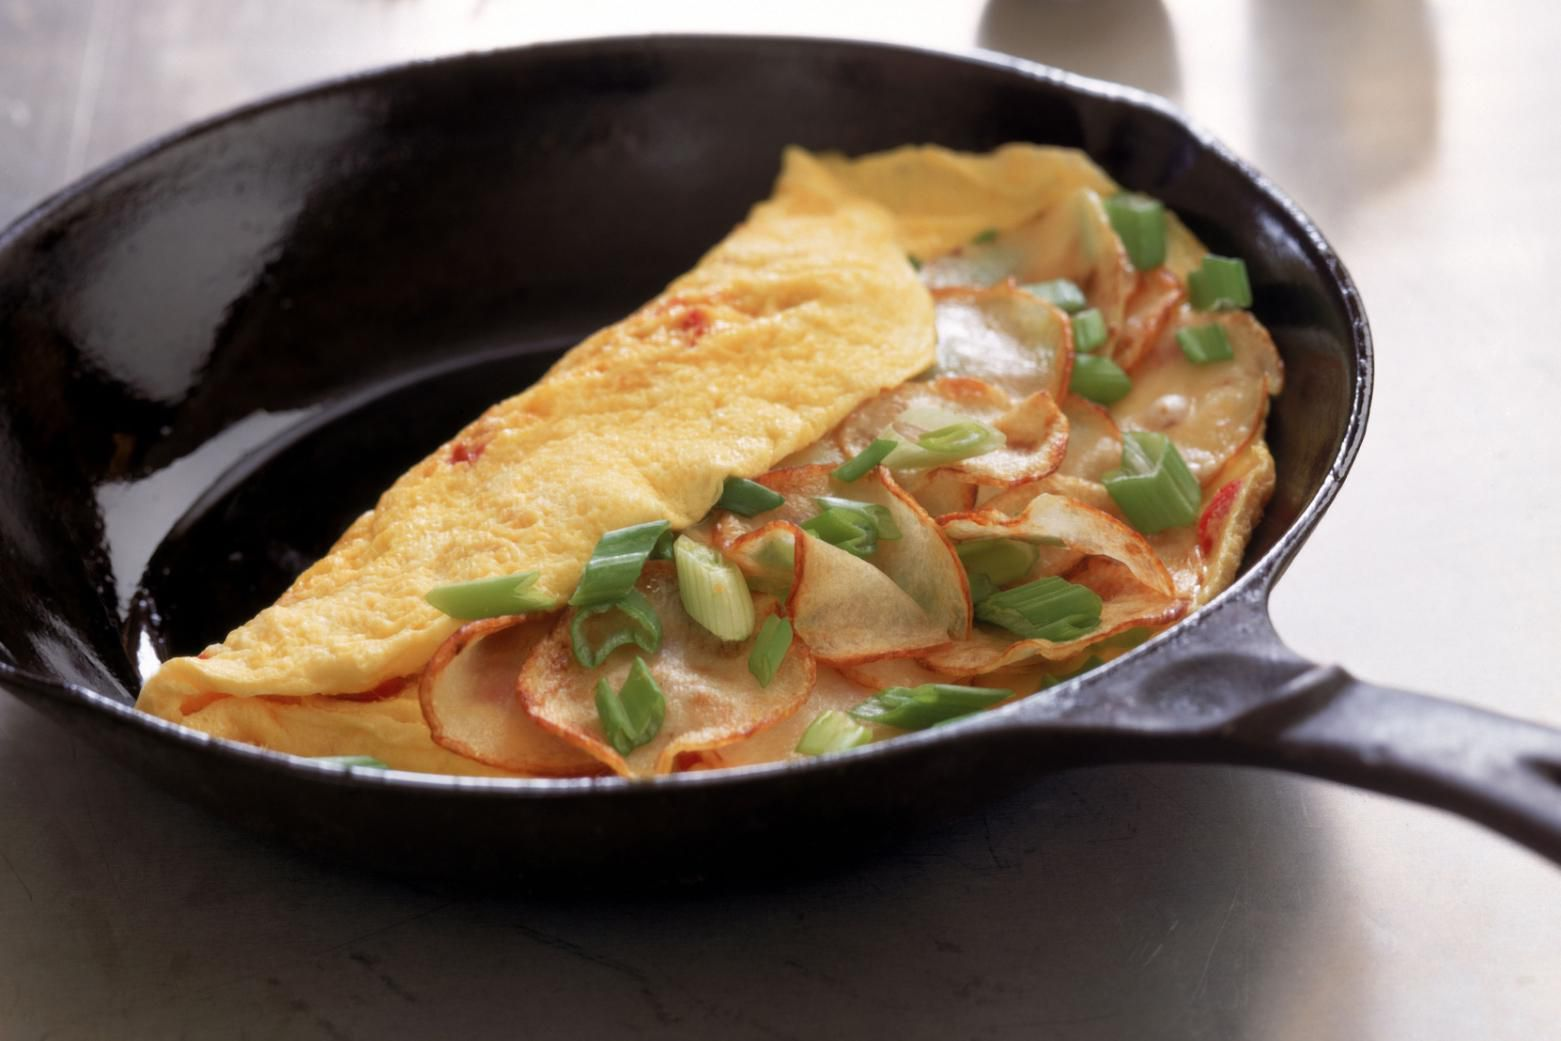 A French Omelette With Ham Cheese And Green Onions